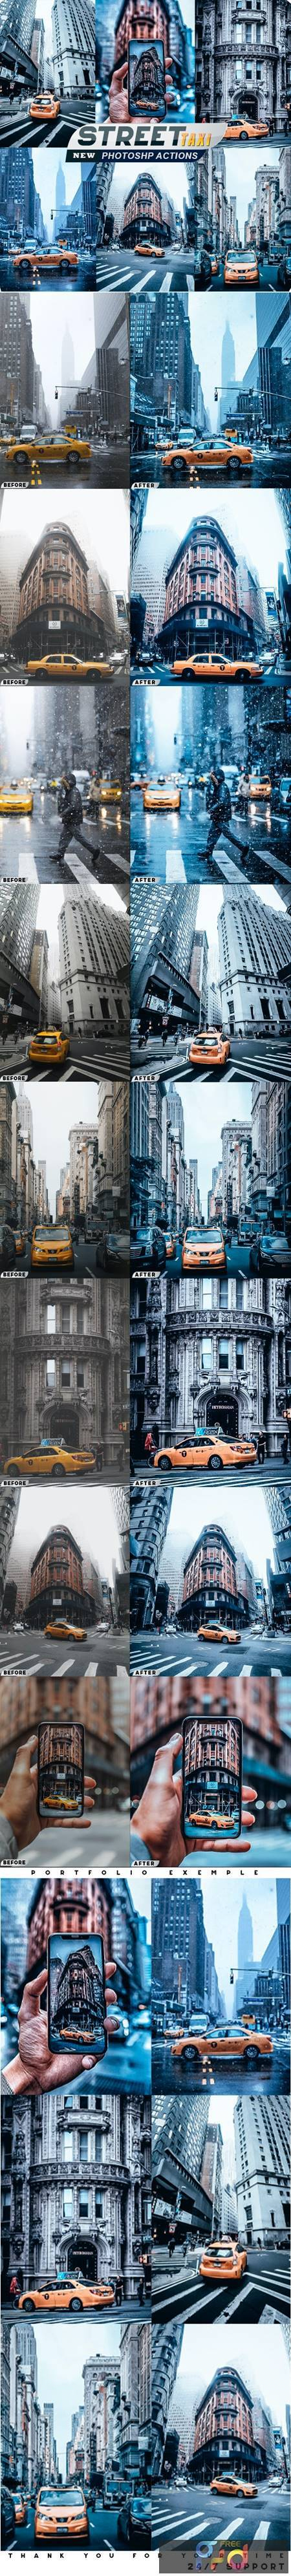 Street Taxi Photoshop Actions 26717348 1